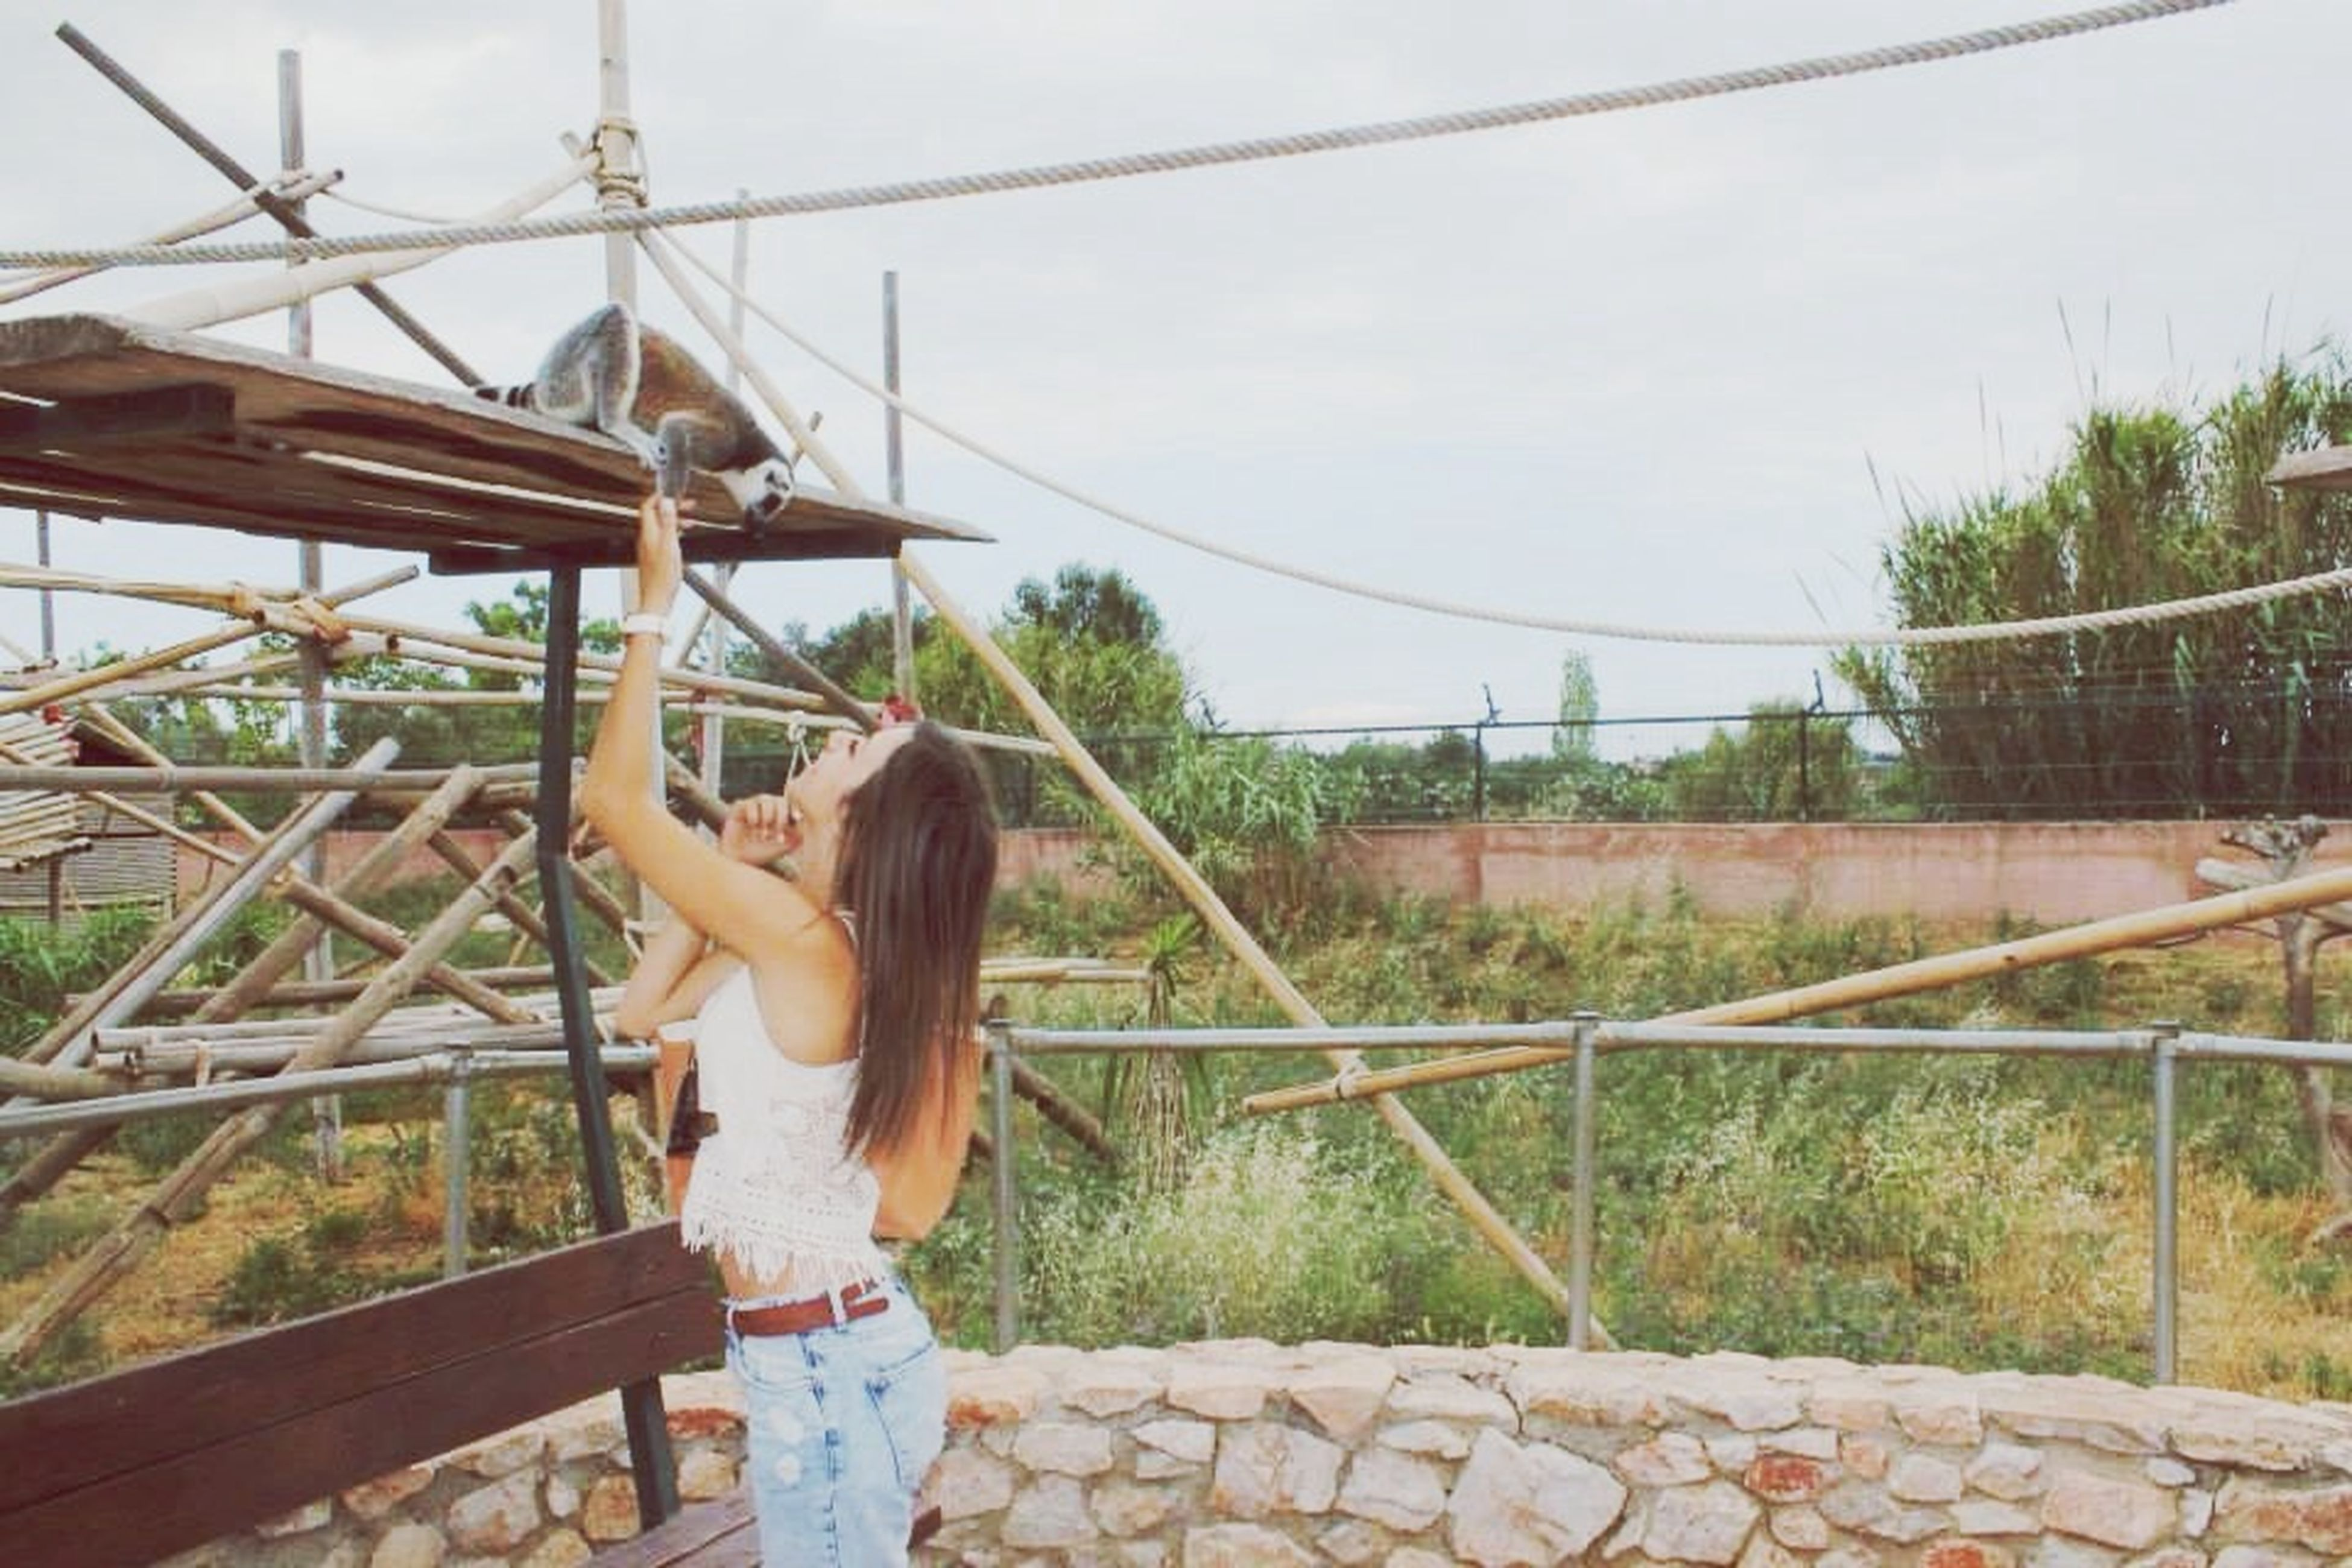 built structure, architecture, building exterior, metal, low angle view, railing, day, house, outdoors, hanging, no people, sunlight, rope, wood - material, metallic, staircase, plant, fence, steps, connection